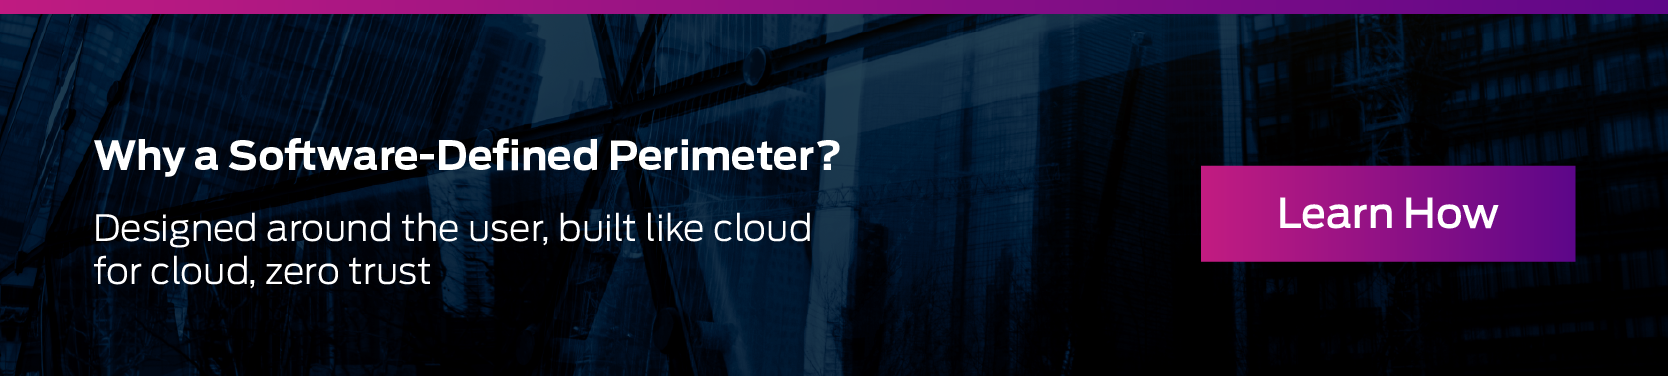 Why a Software-Defined Perimeter?